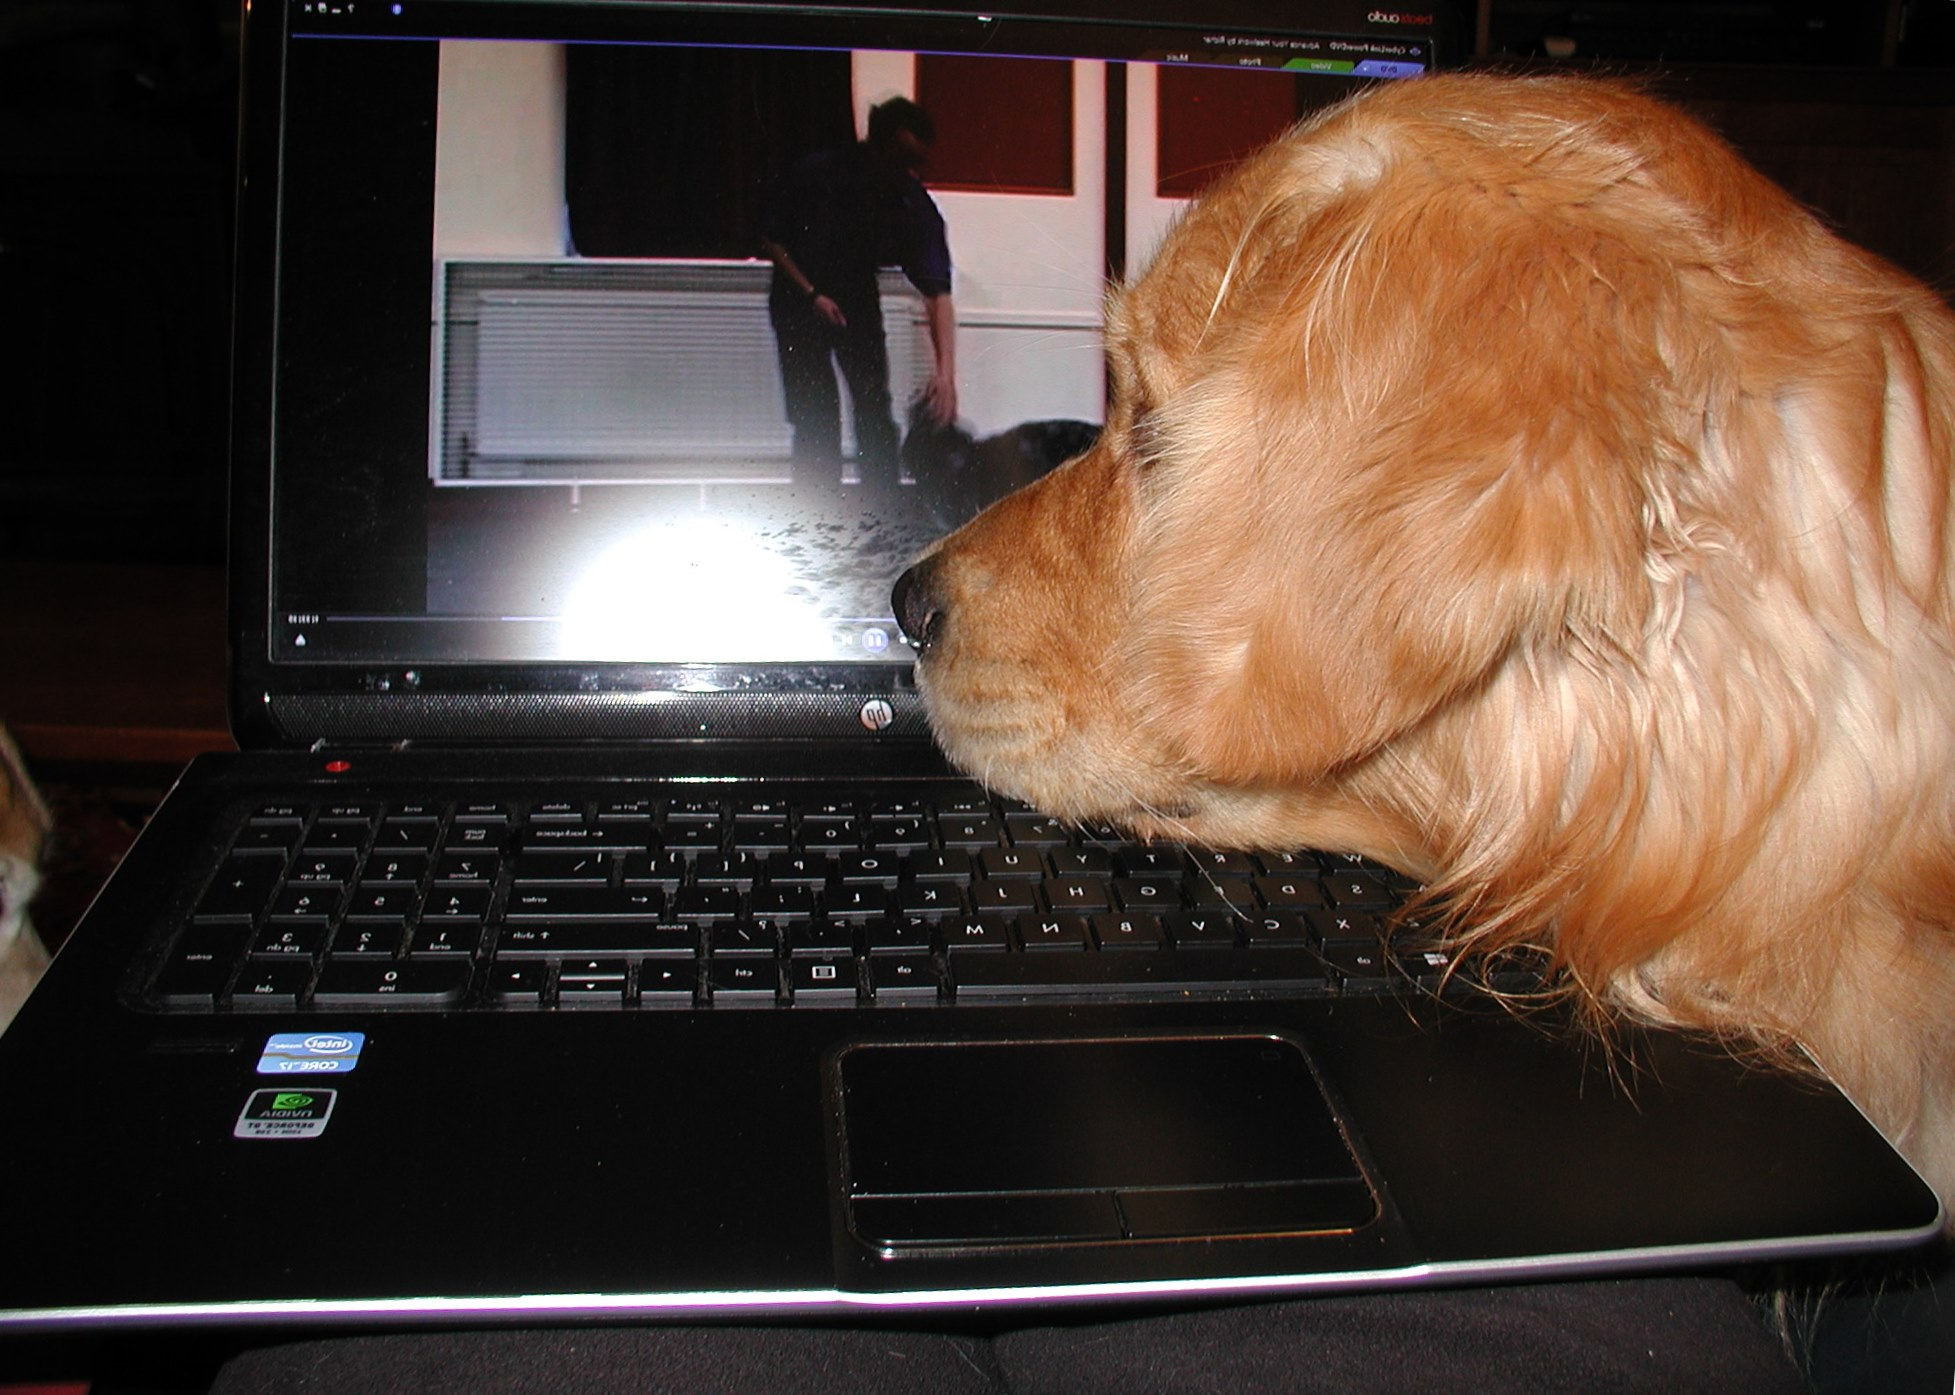 Martin is watching a Richard Curtis freestyle training video on his laptop